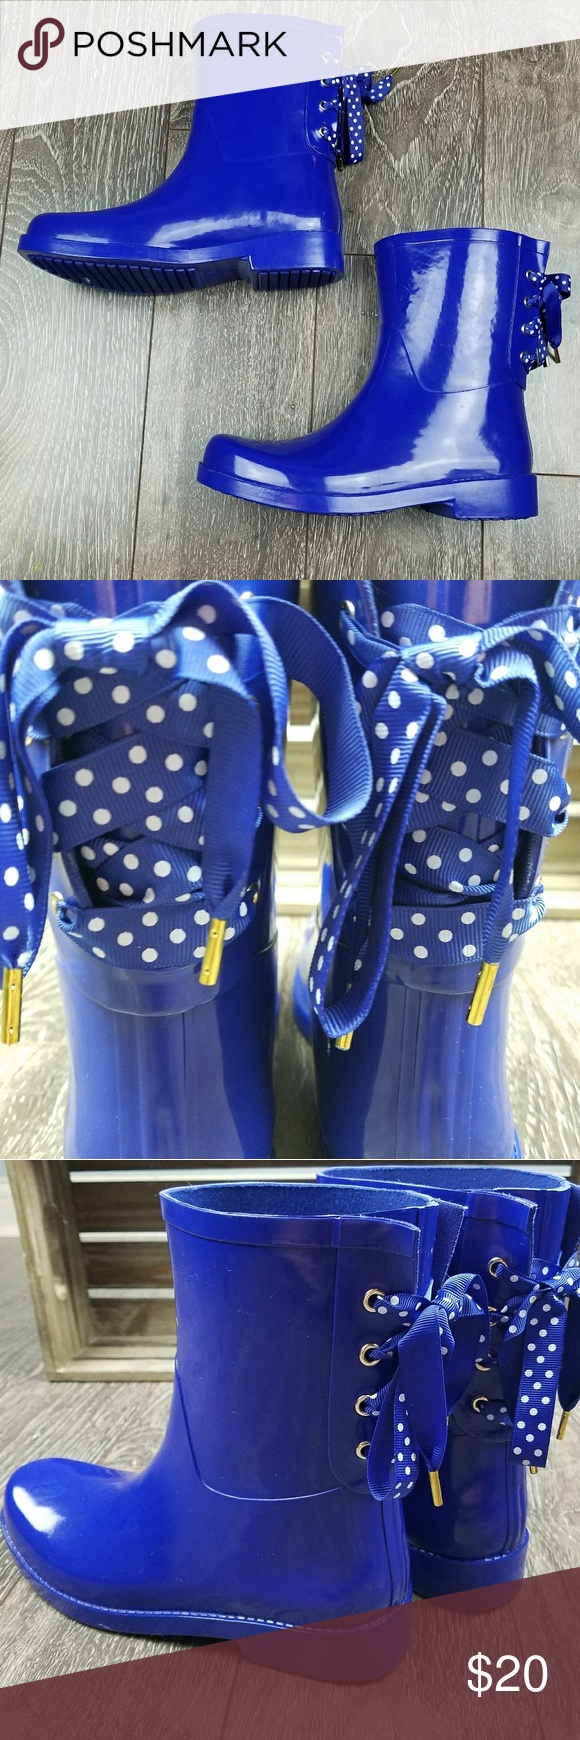 c32973b0bff0 Crown and ivy polka dot lace up rain boots wellies ⛈made of rubber ...